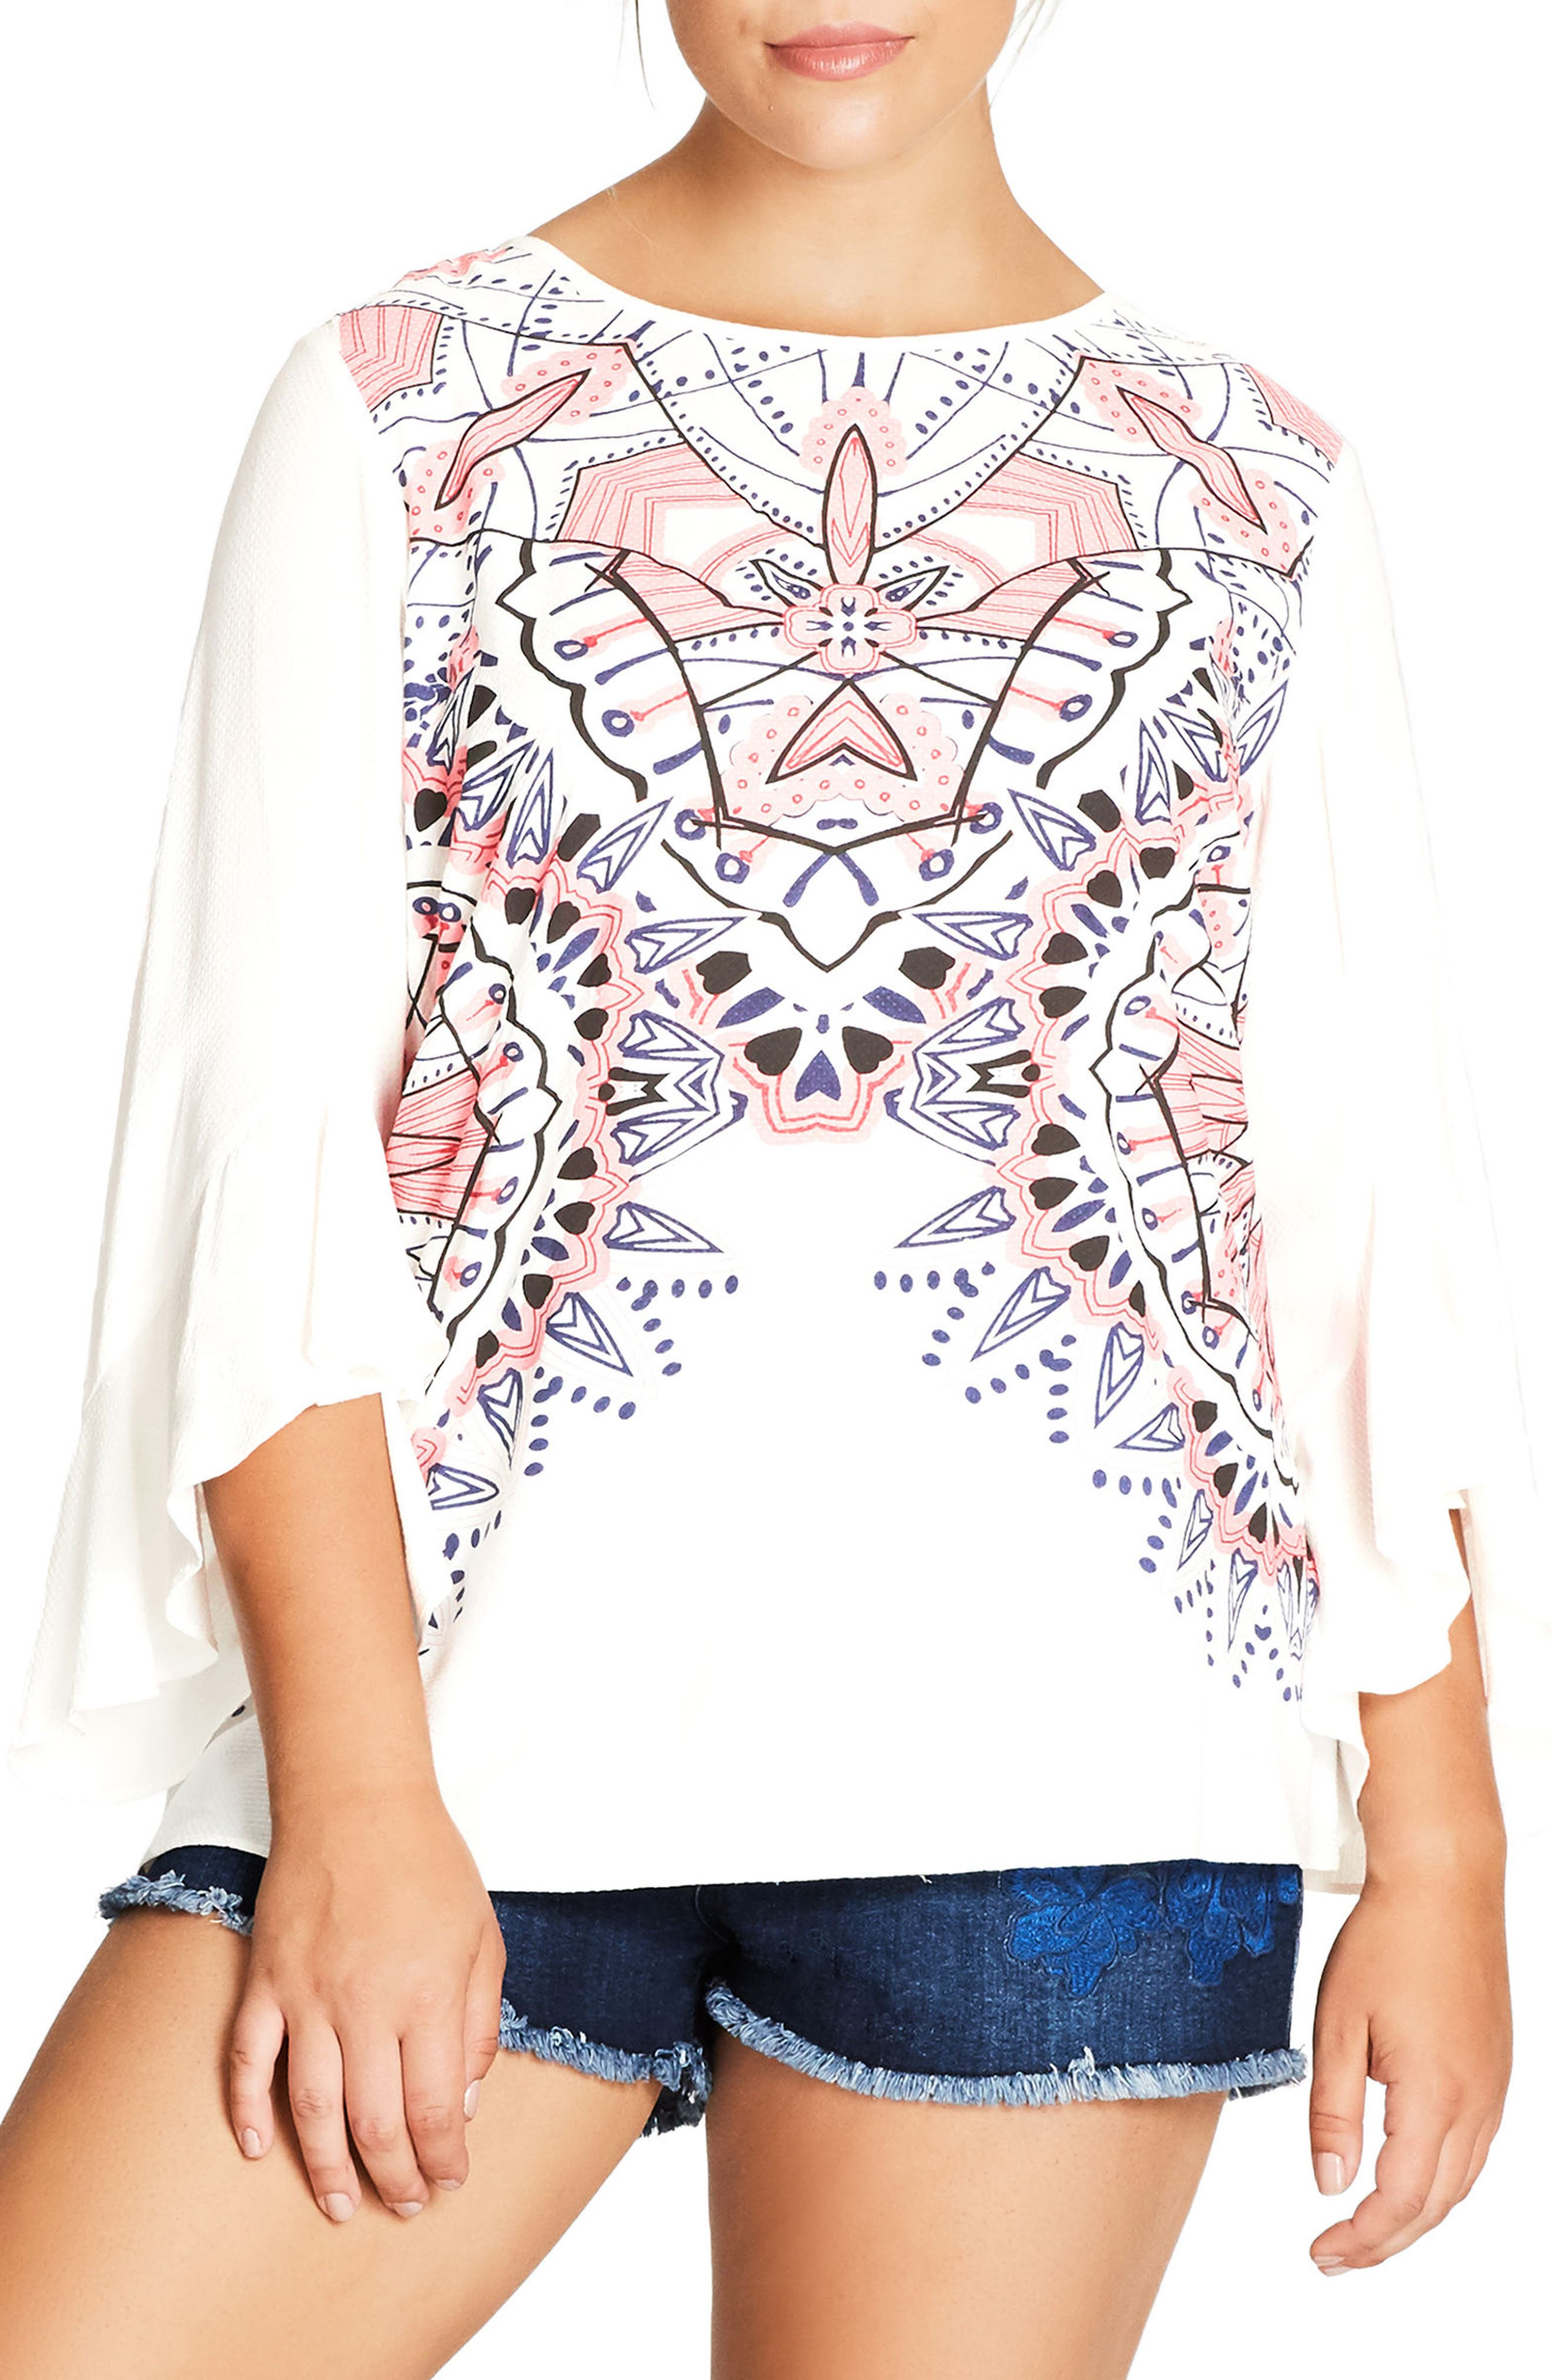 Alternate Image 1 Selected - City Chic Shirt Be Mine Top (Plus Size)